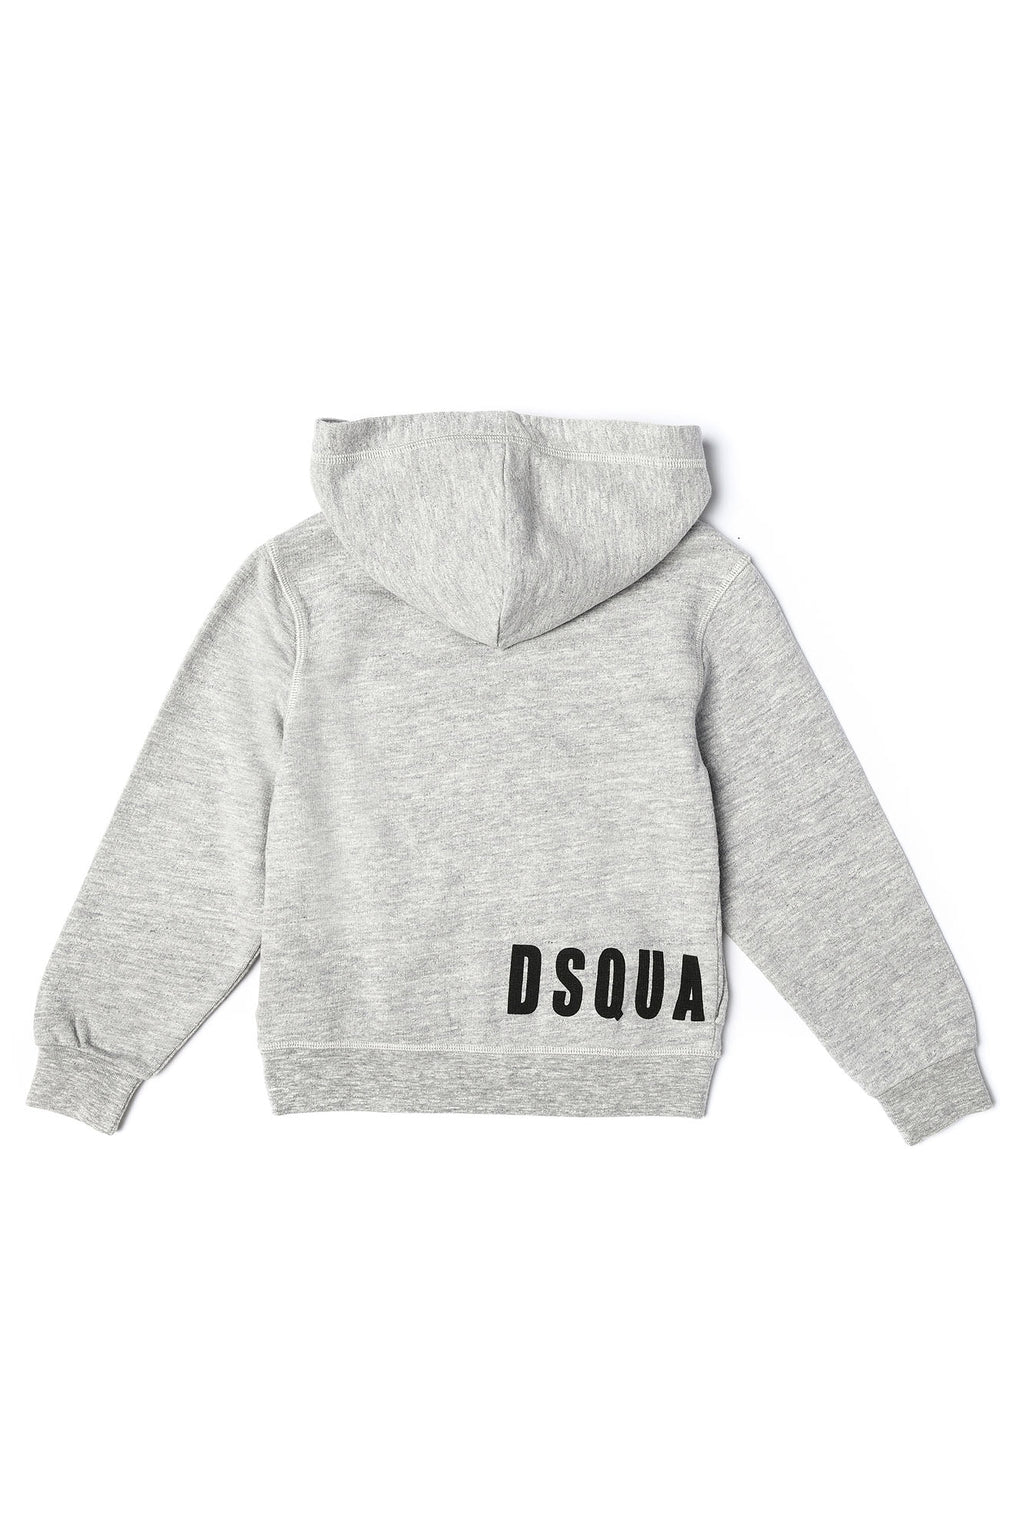 Sweatshirt Zippé-DSQUARED2-Maralex Paris (4446372266047)